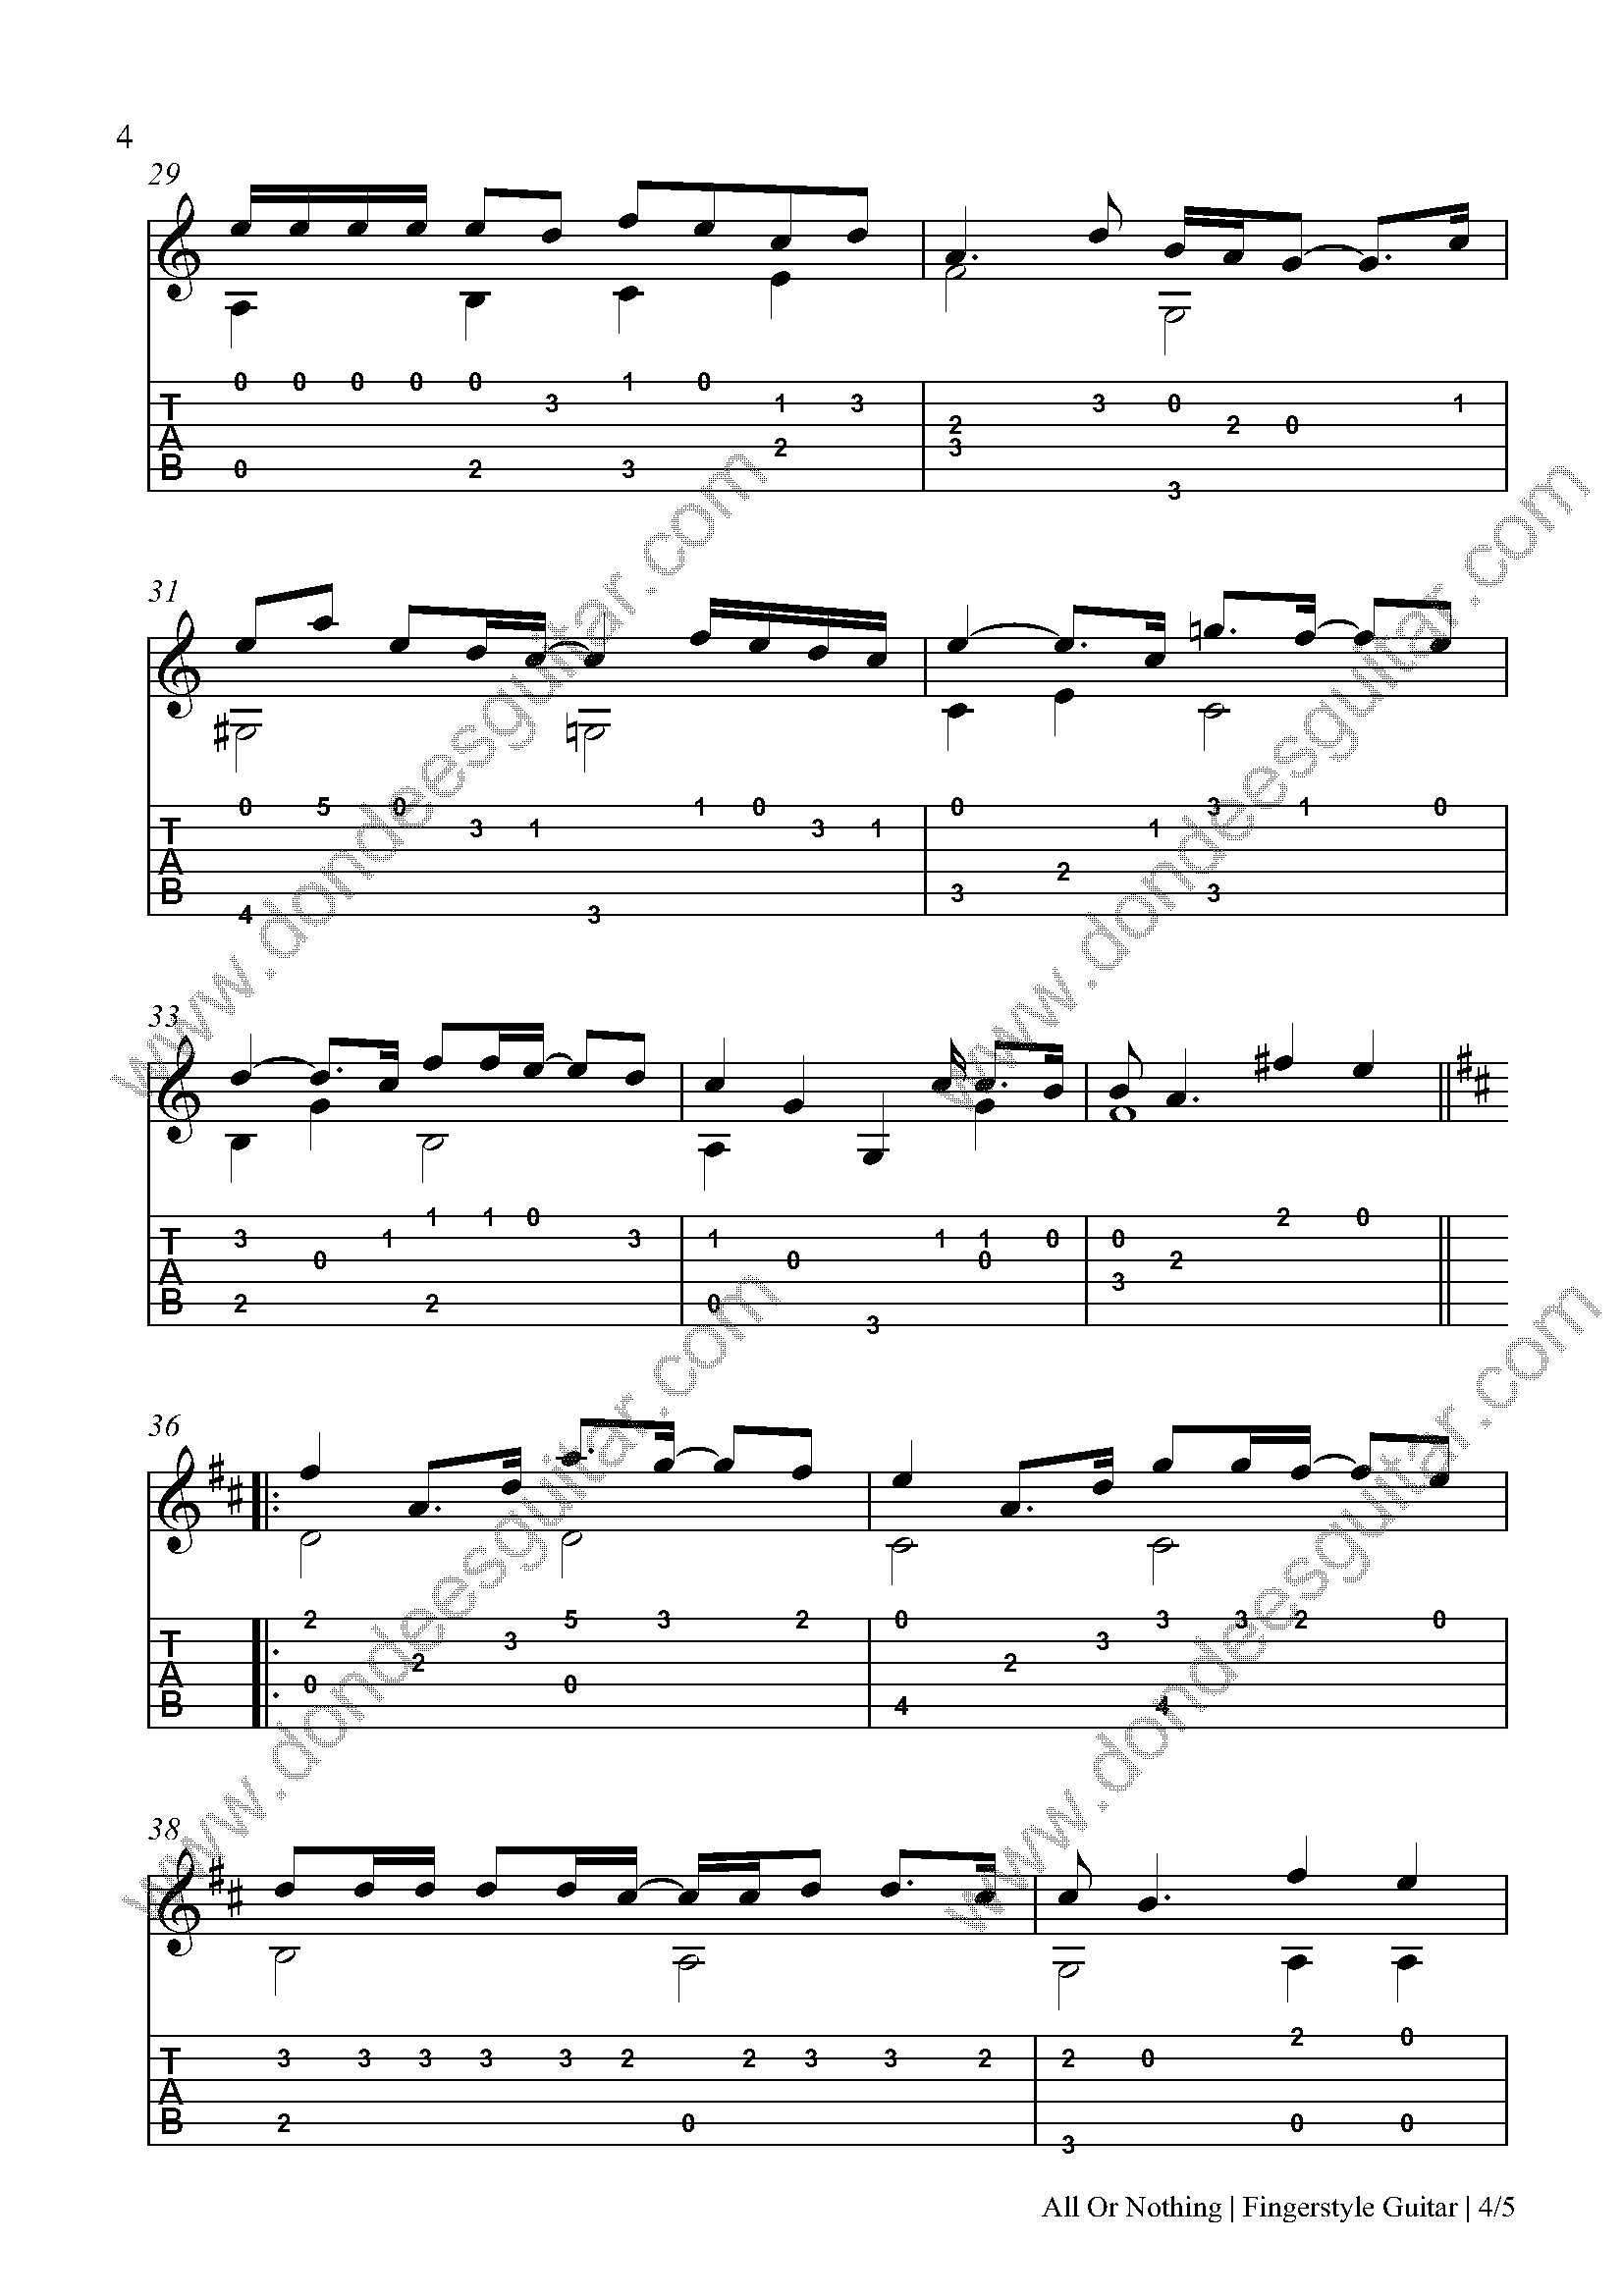 All Or Nothing Fingerstyle Tabs